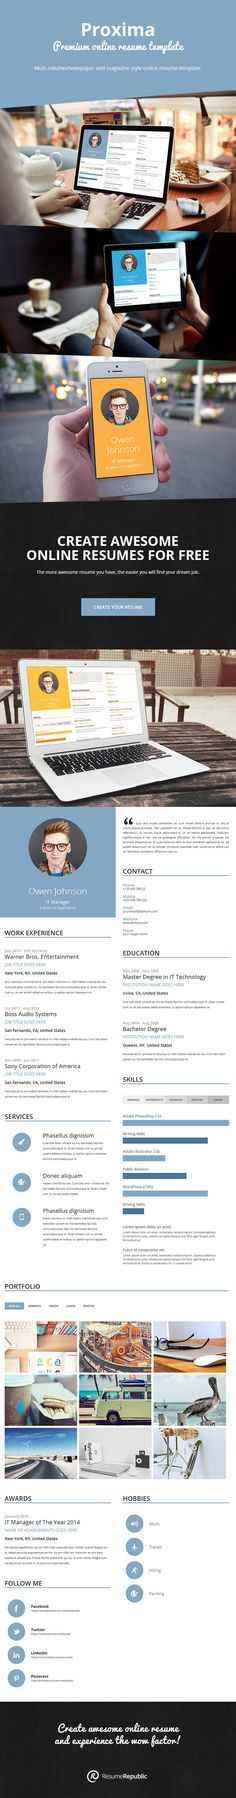 LAST DAY 15 Unique Résumé and Cover Letter Templates - only $19 - online resumes templates